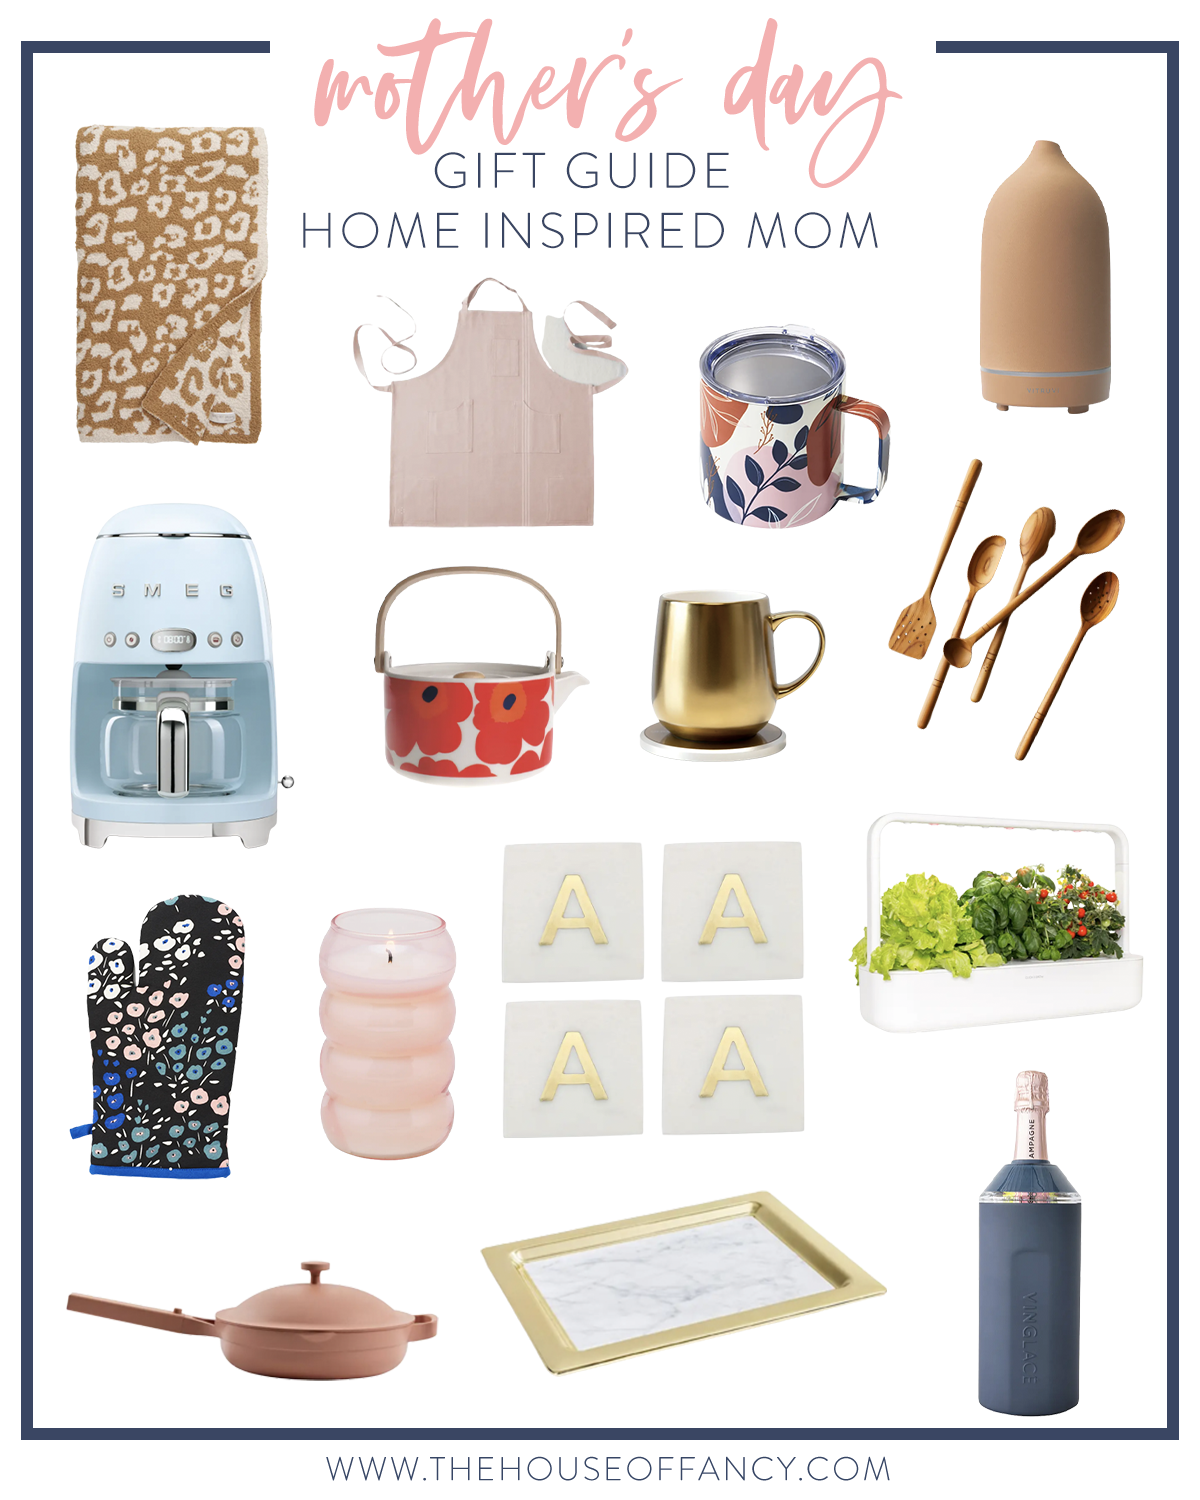 Mother's Day Gift Ideas by popular Houston life and style blog, The House of Fancy: collage image of a leopard print bracelet, oven mit, Always pan, monogram coasters, coffee maker, apron, mug warmer, kitchen utensils, and gold serving tray.